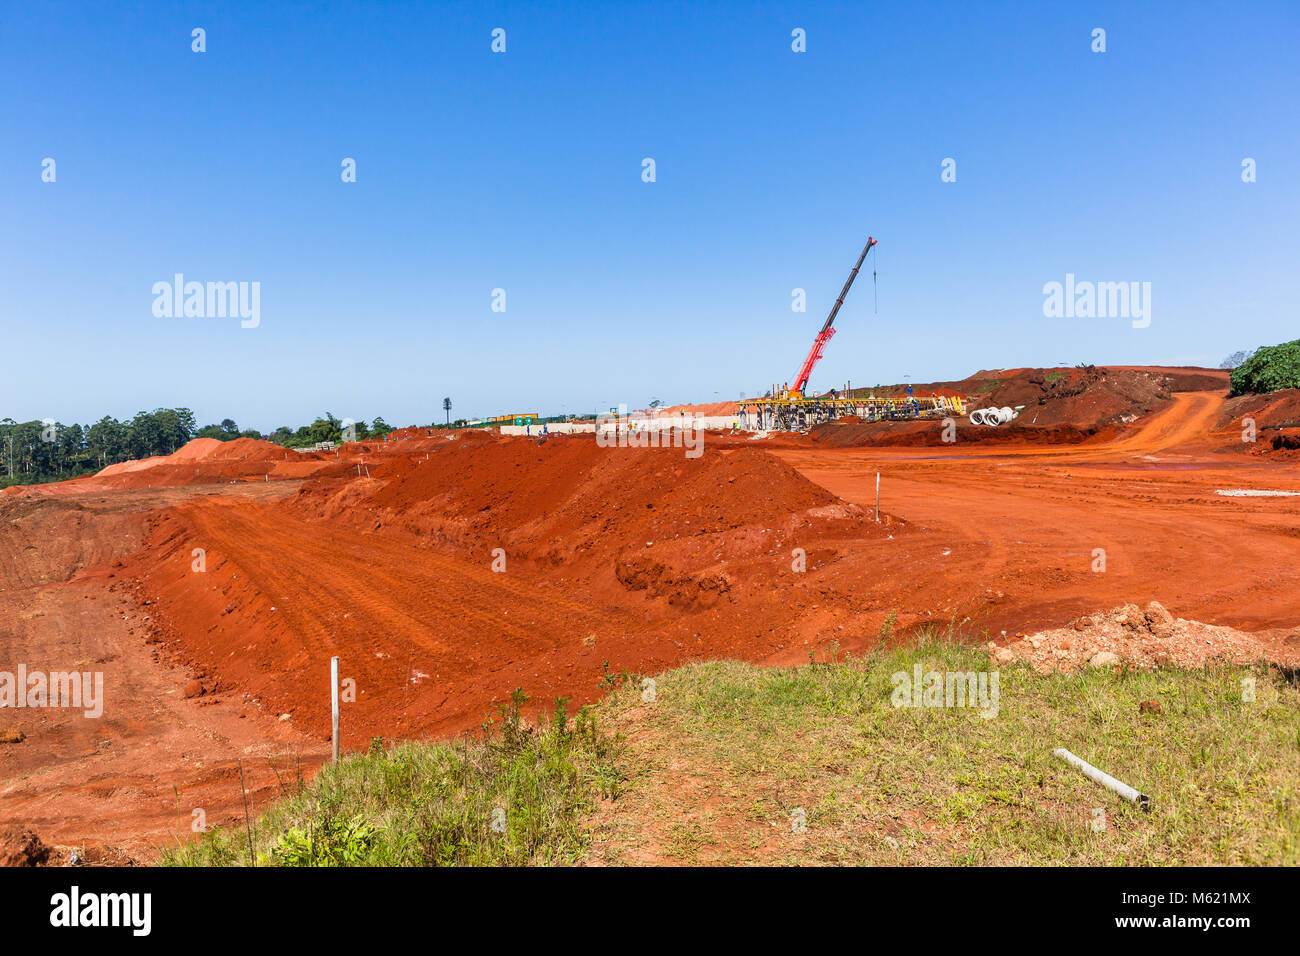 Construction earthworks new building housing engineering projects with concrete foundations been laid in countryside, Stock Photo